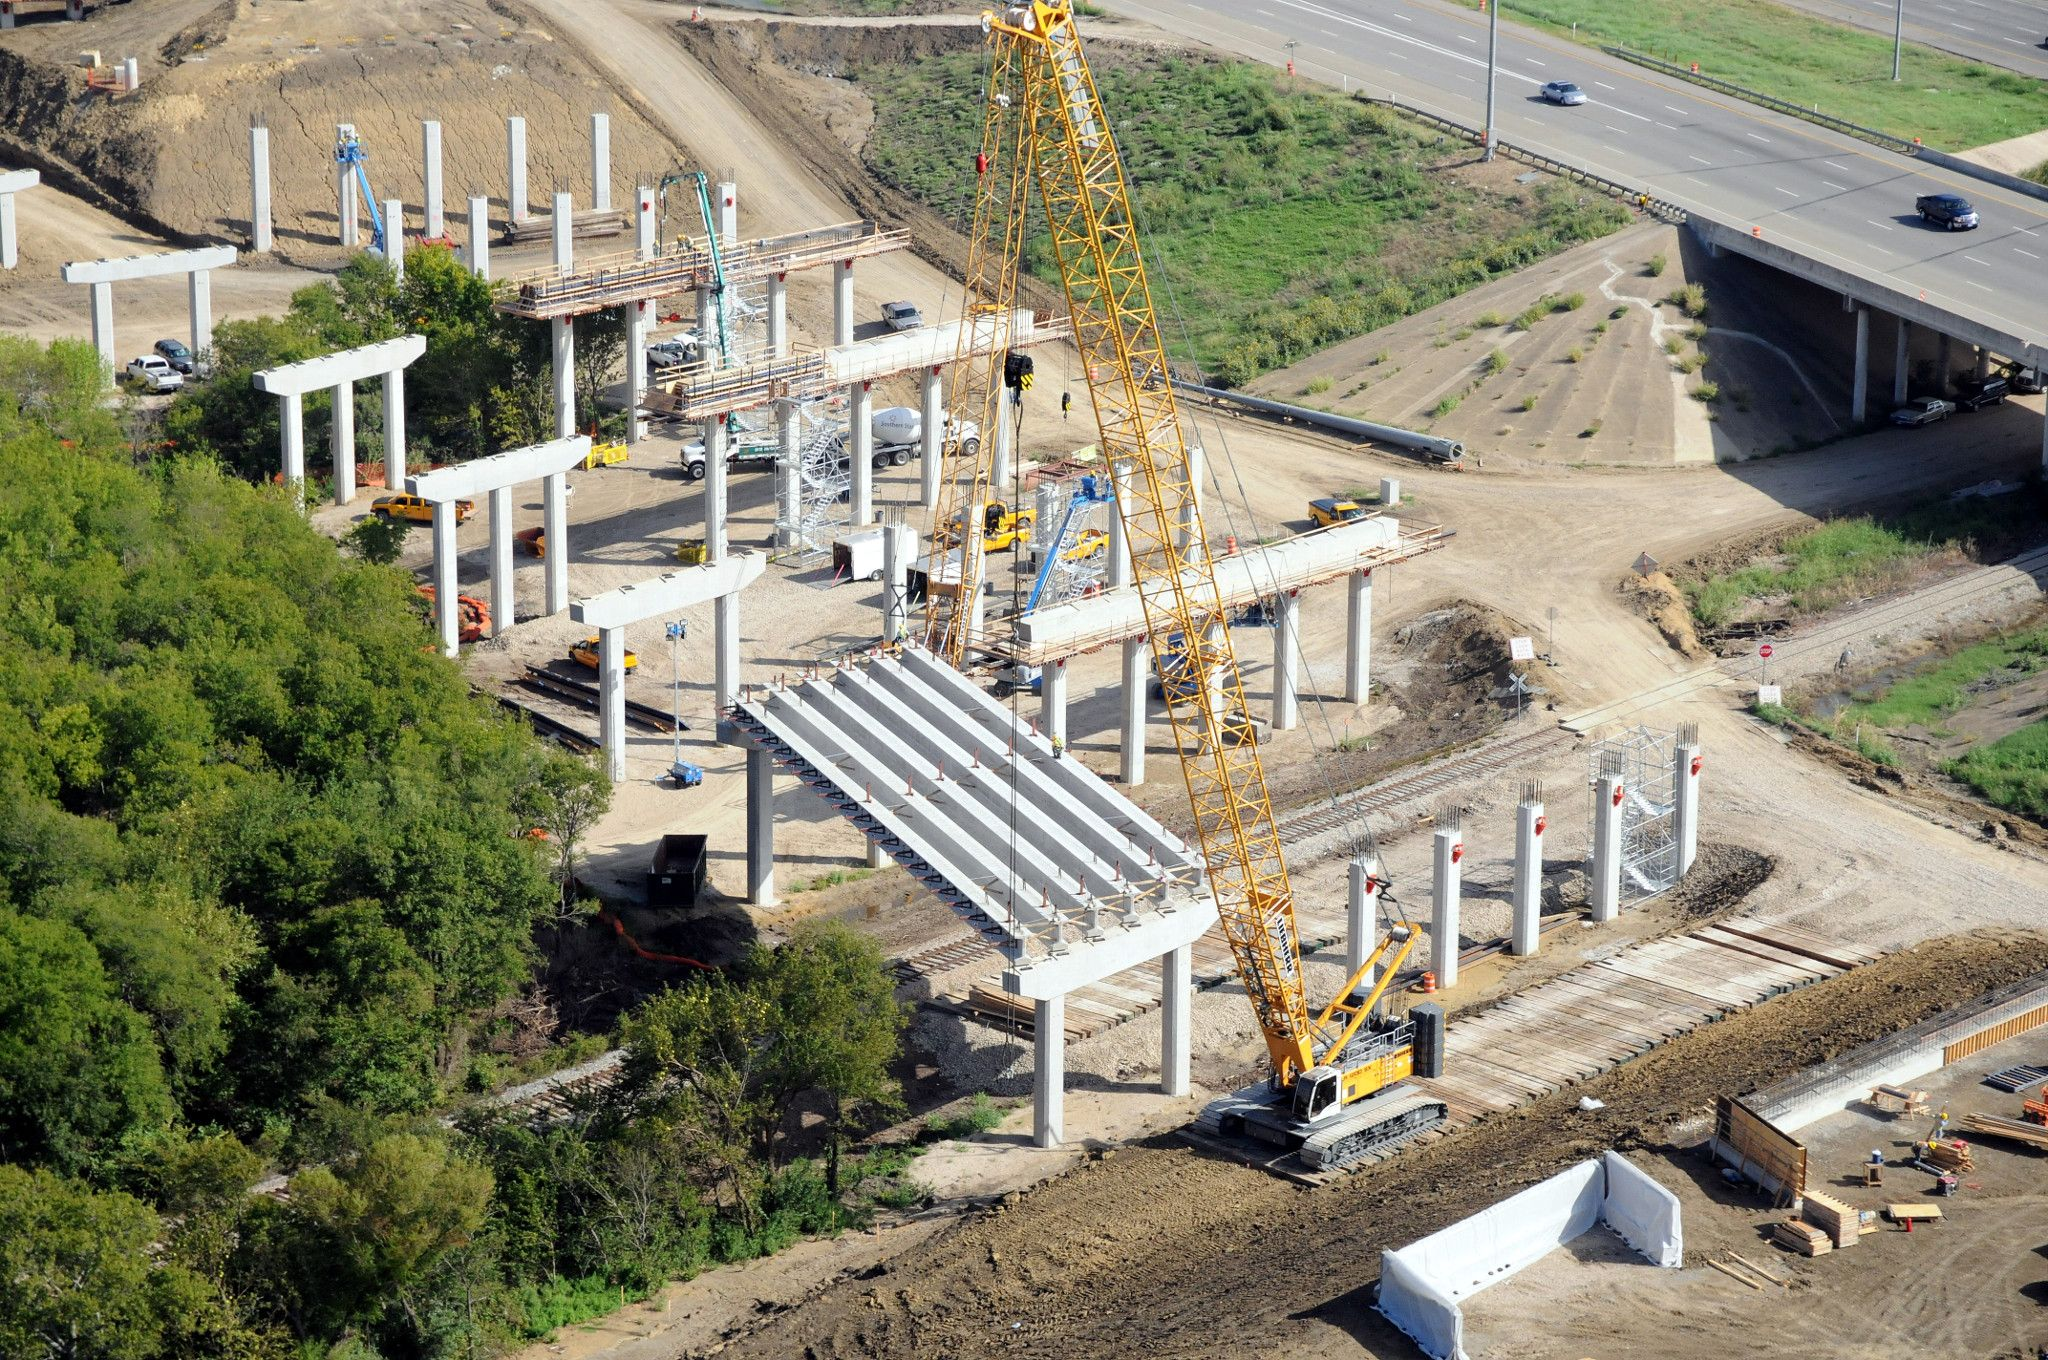 Aerial view of construction crane on a construction site of a highway bridge overpass